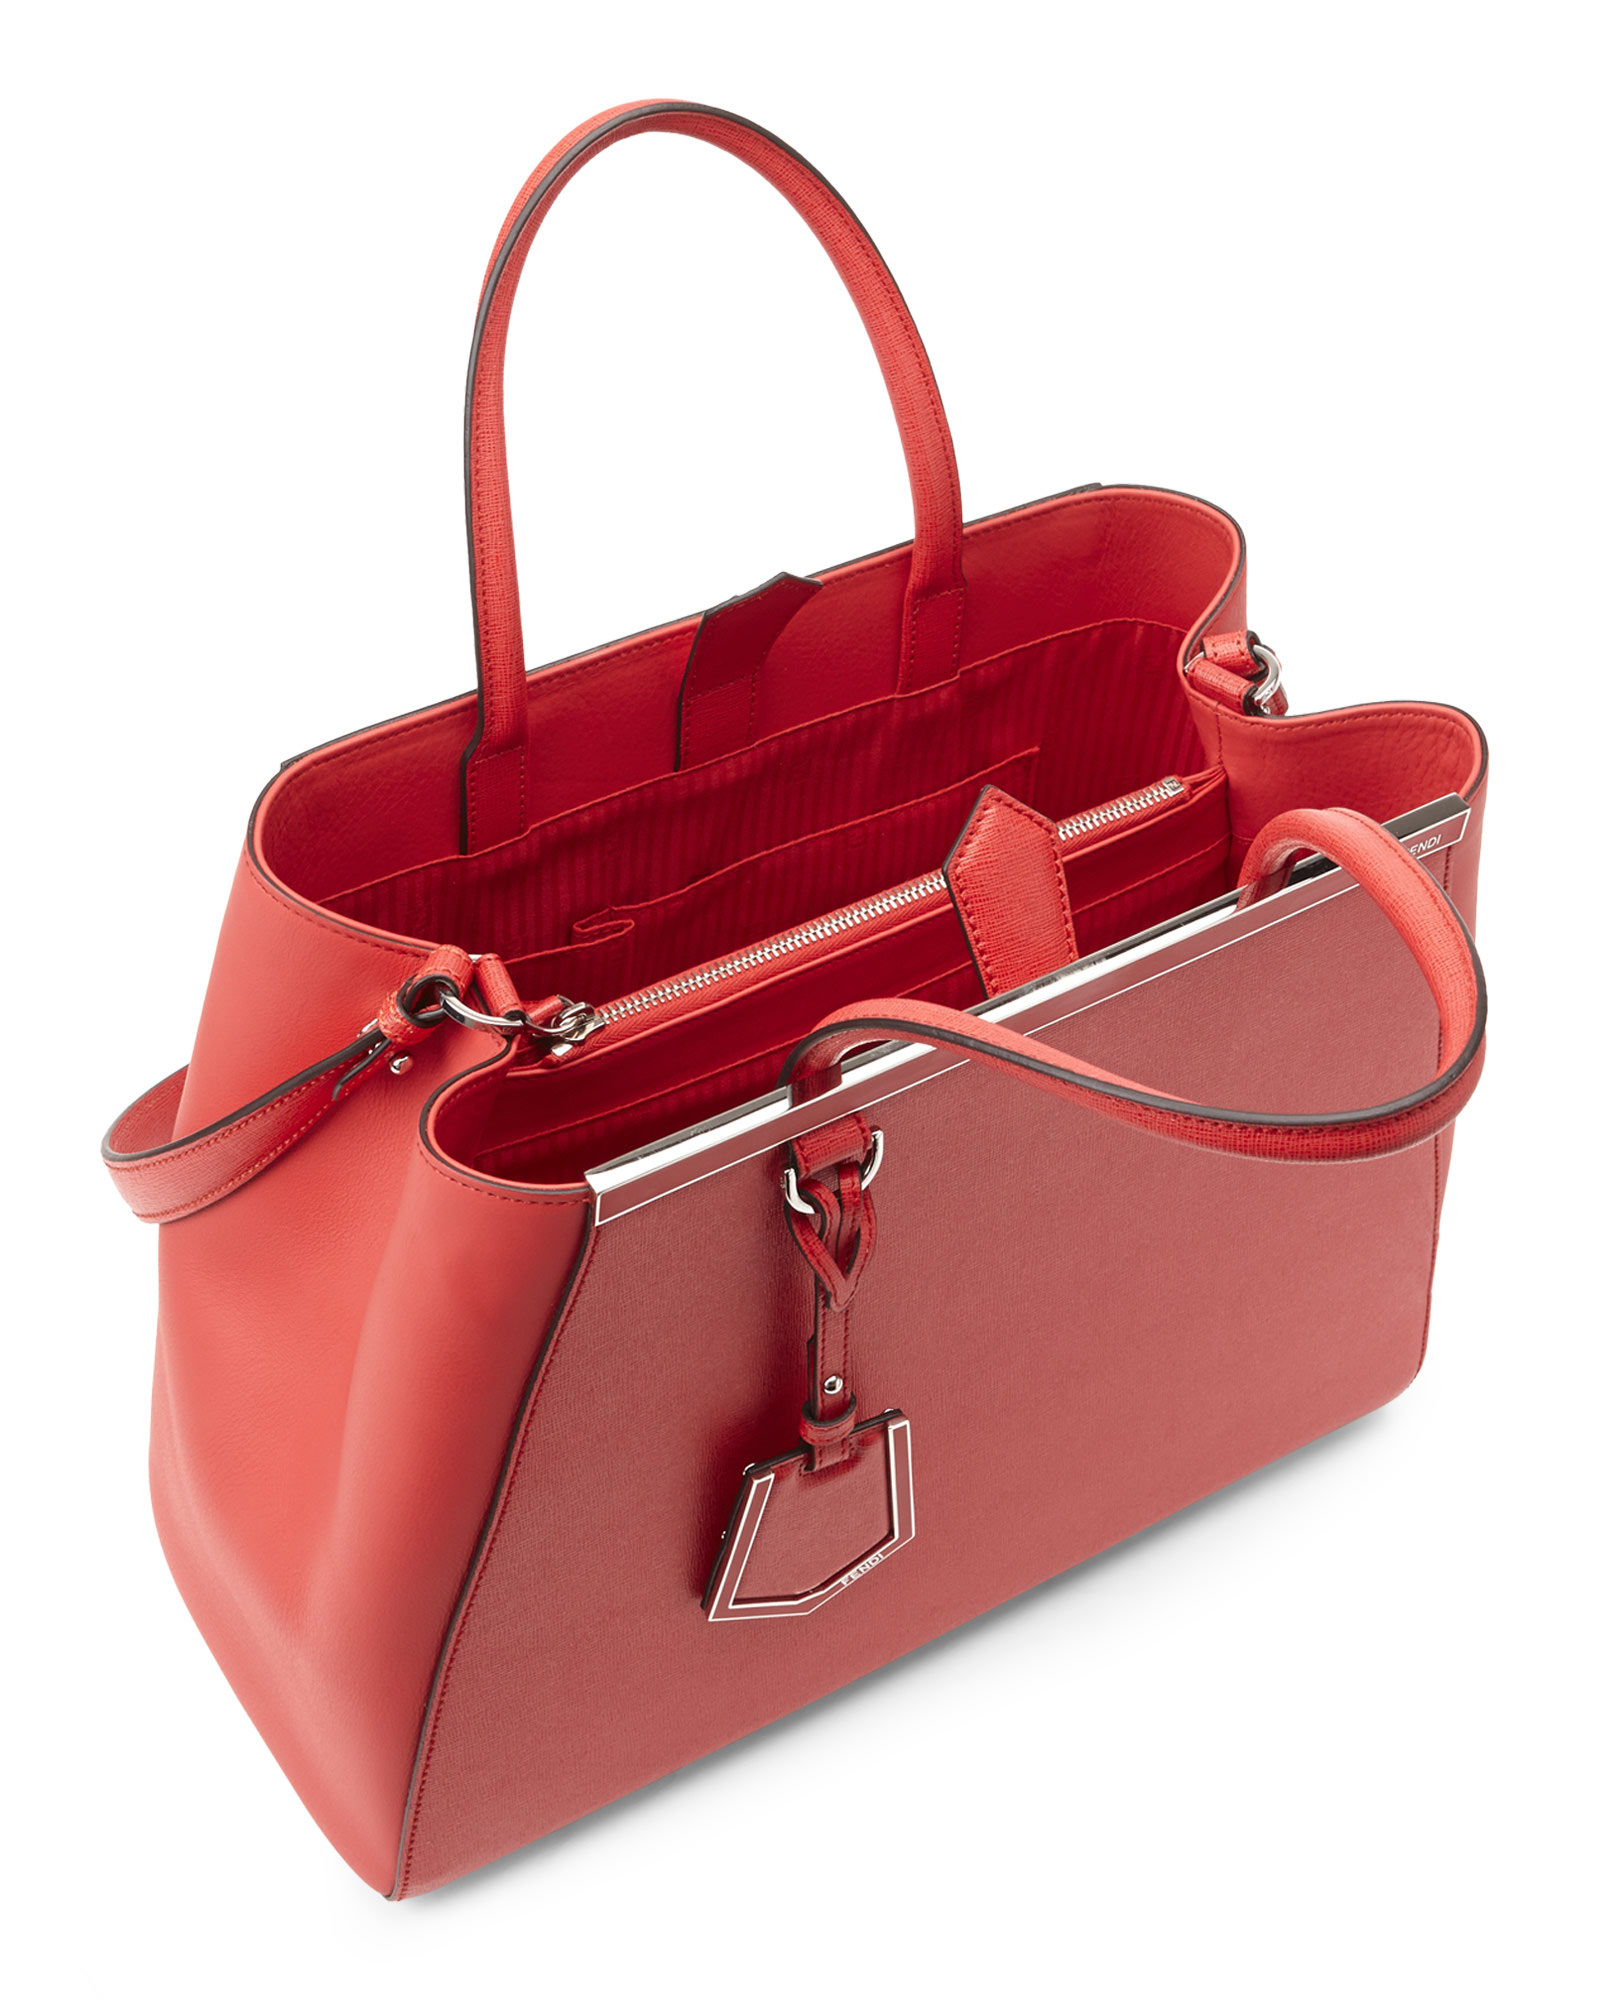 7685d993fb0e Lyst - Fendi Coral 2Jours Convertible Tote in Red